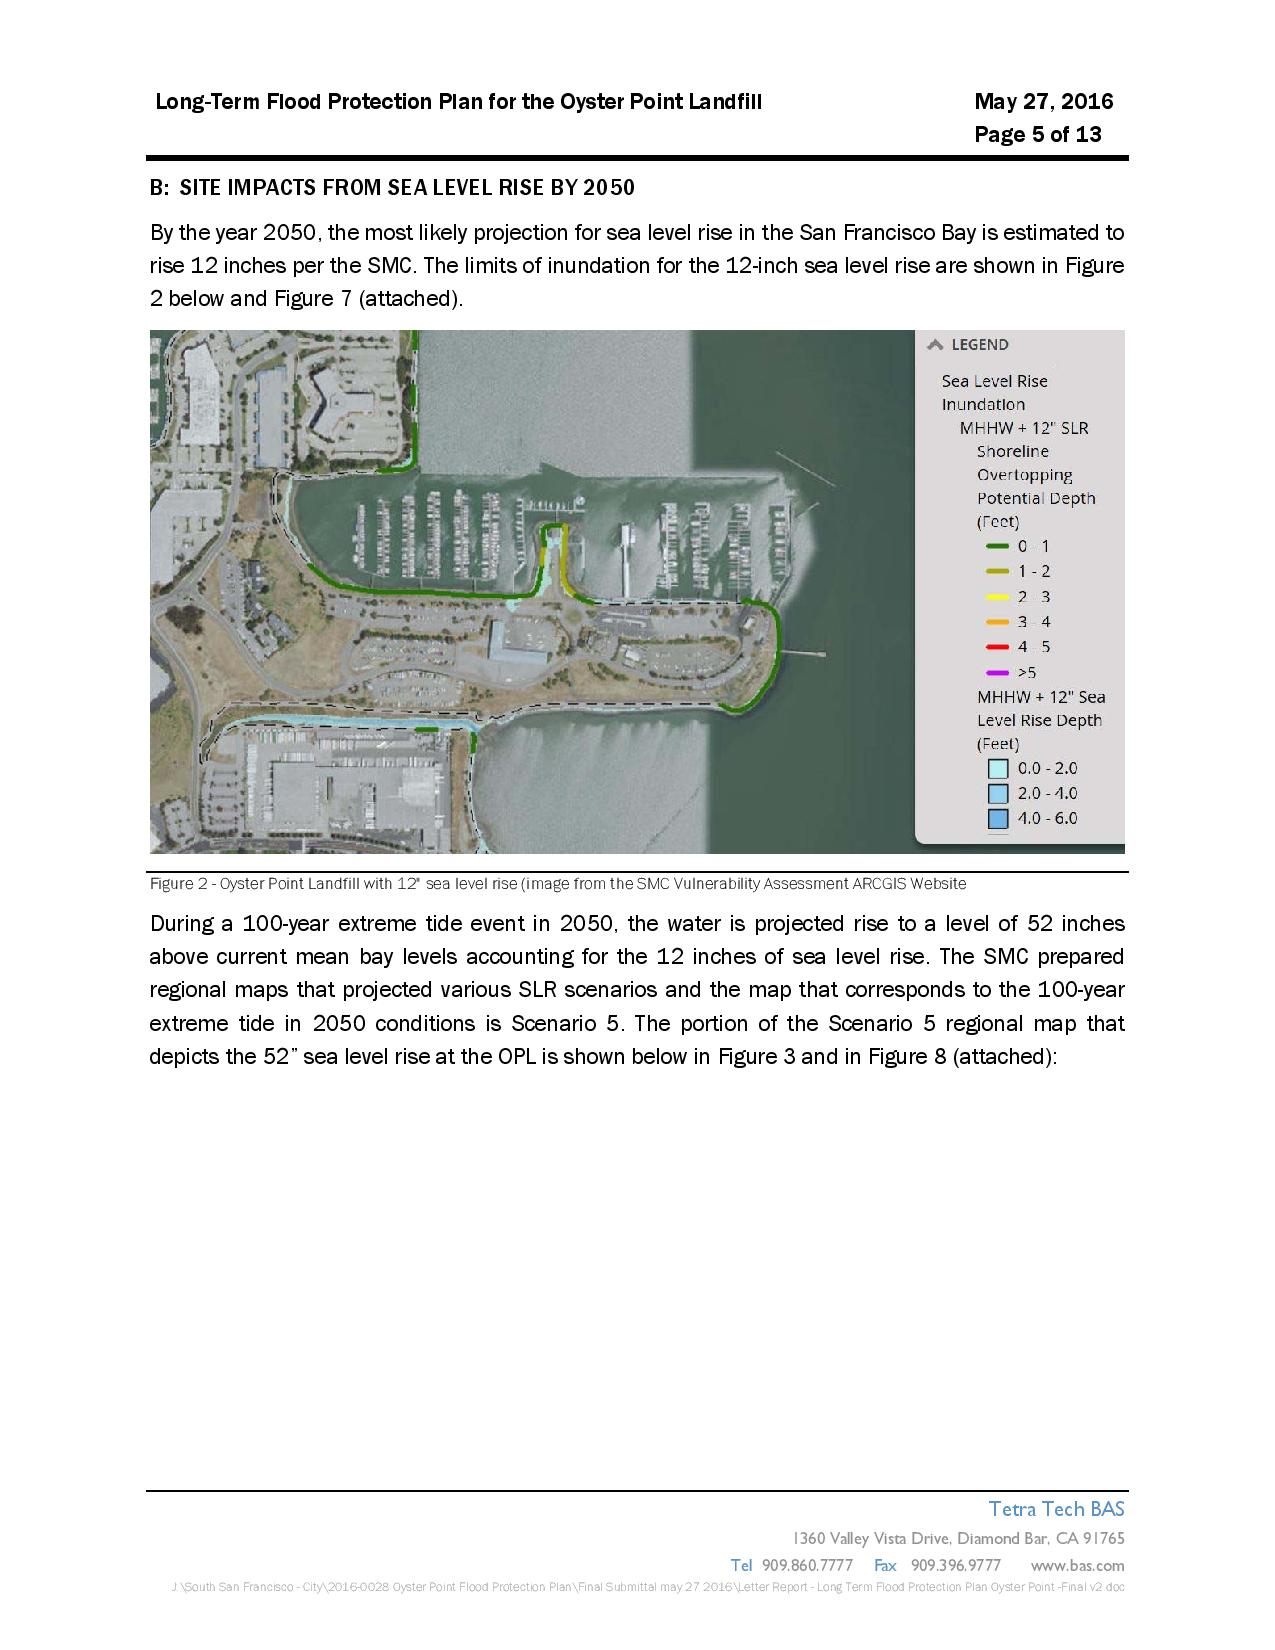 City of SSF Oyster Pt. Landfill Long-Term Flood Protection Letter & Plan-2-page-007